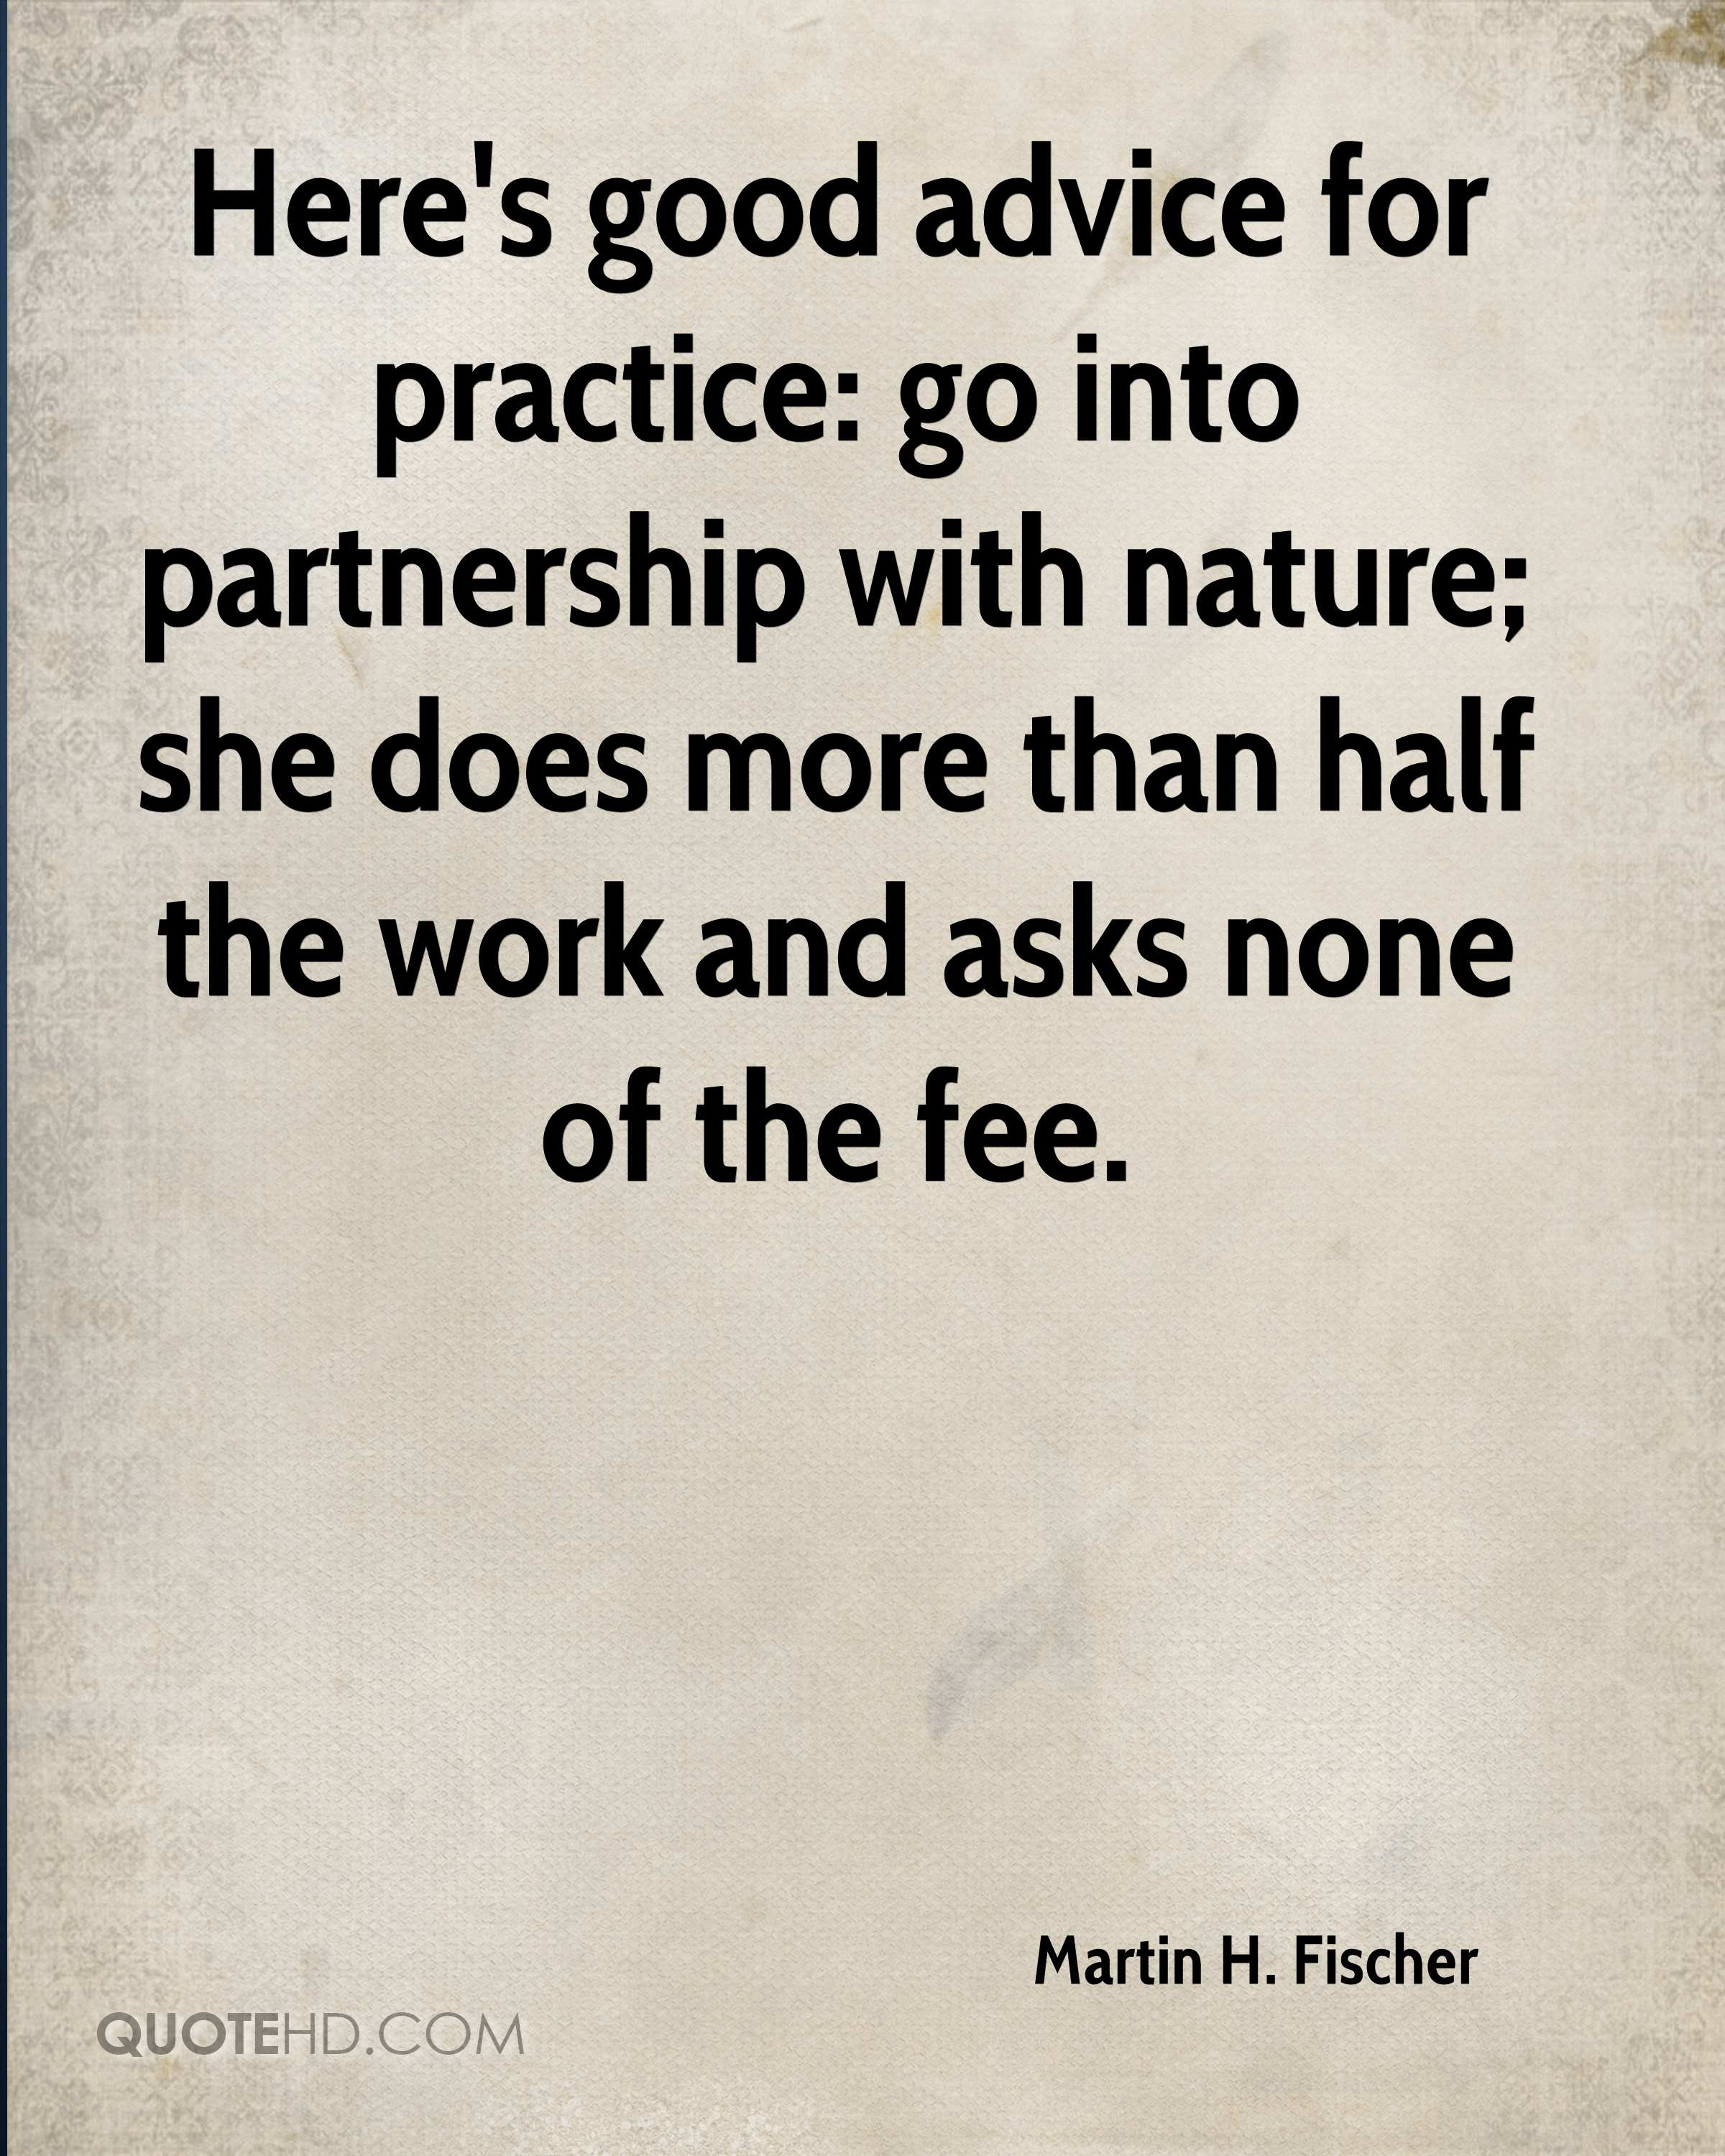 Here's good advice for practice: go into partnership with nature; she does more than half the work and asks none of the fee.